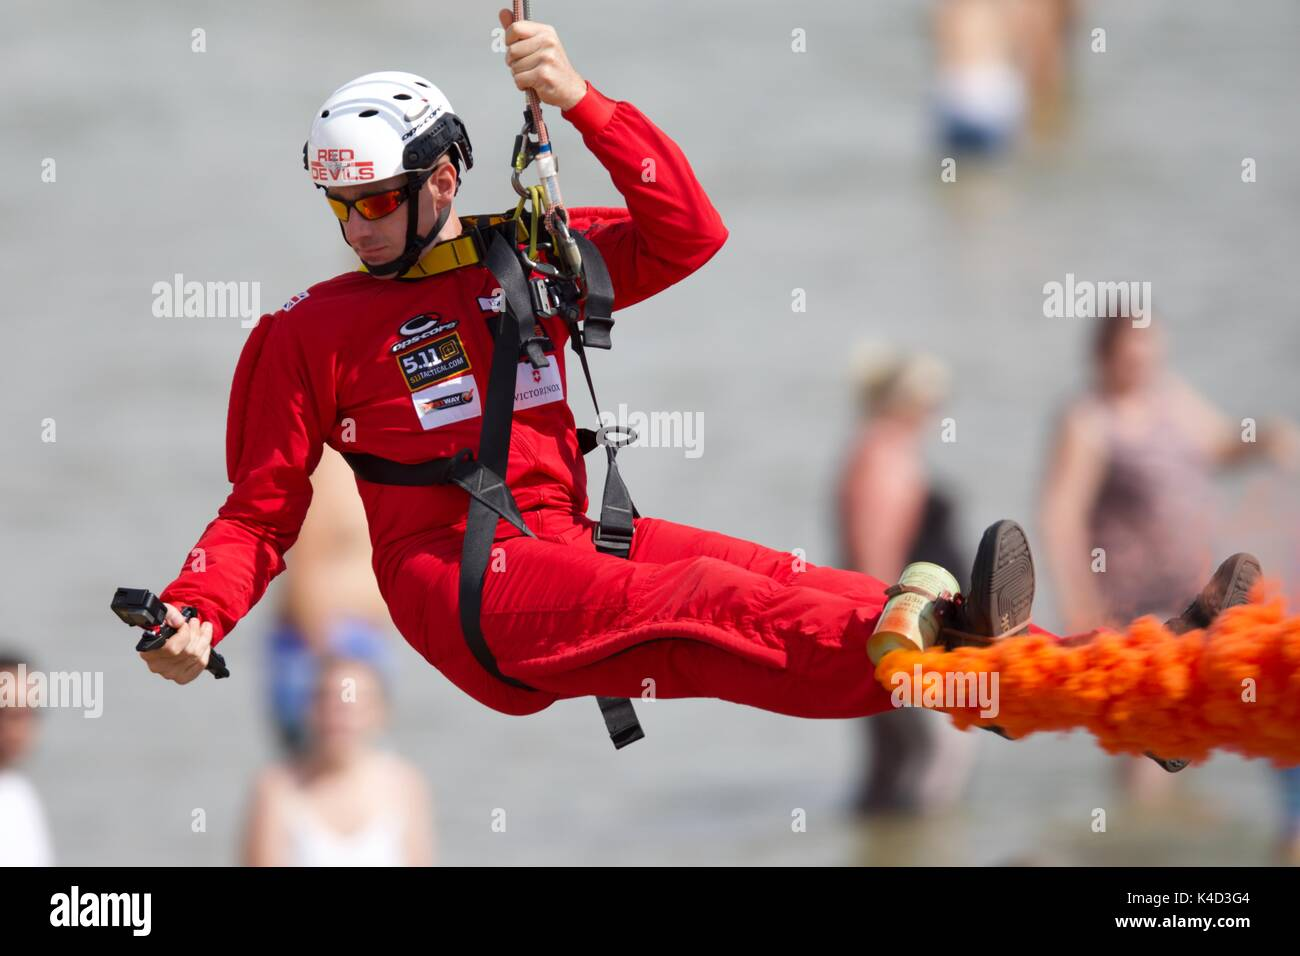 A member of the Red Devils Parachute Team having fun on the Bournemouth Zip Wire - Stock Image